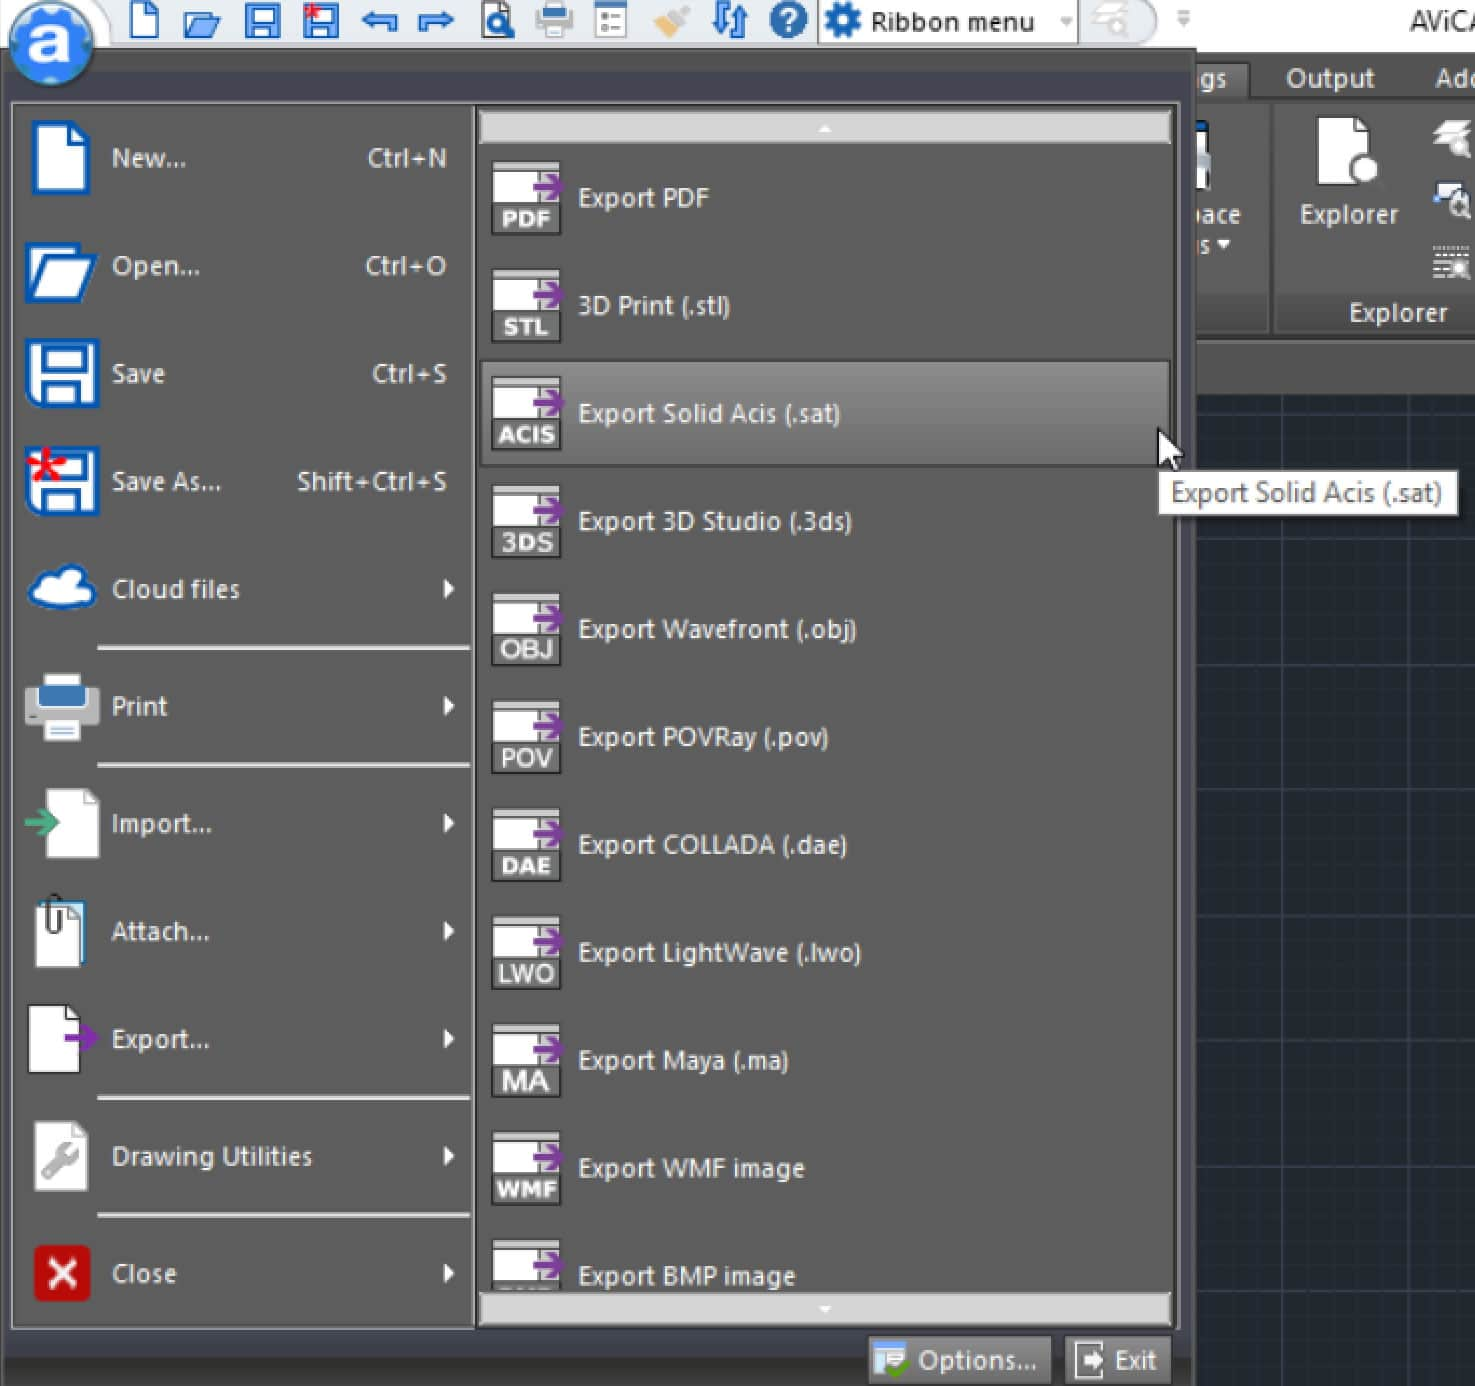 AViCAD file export menu